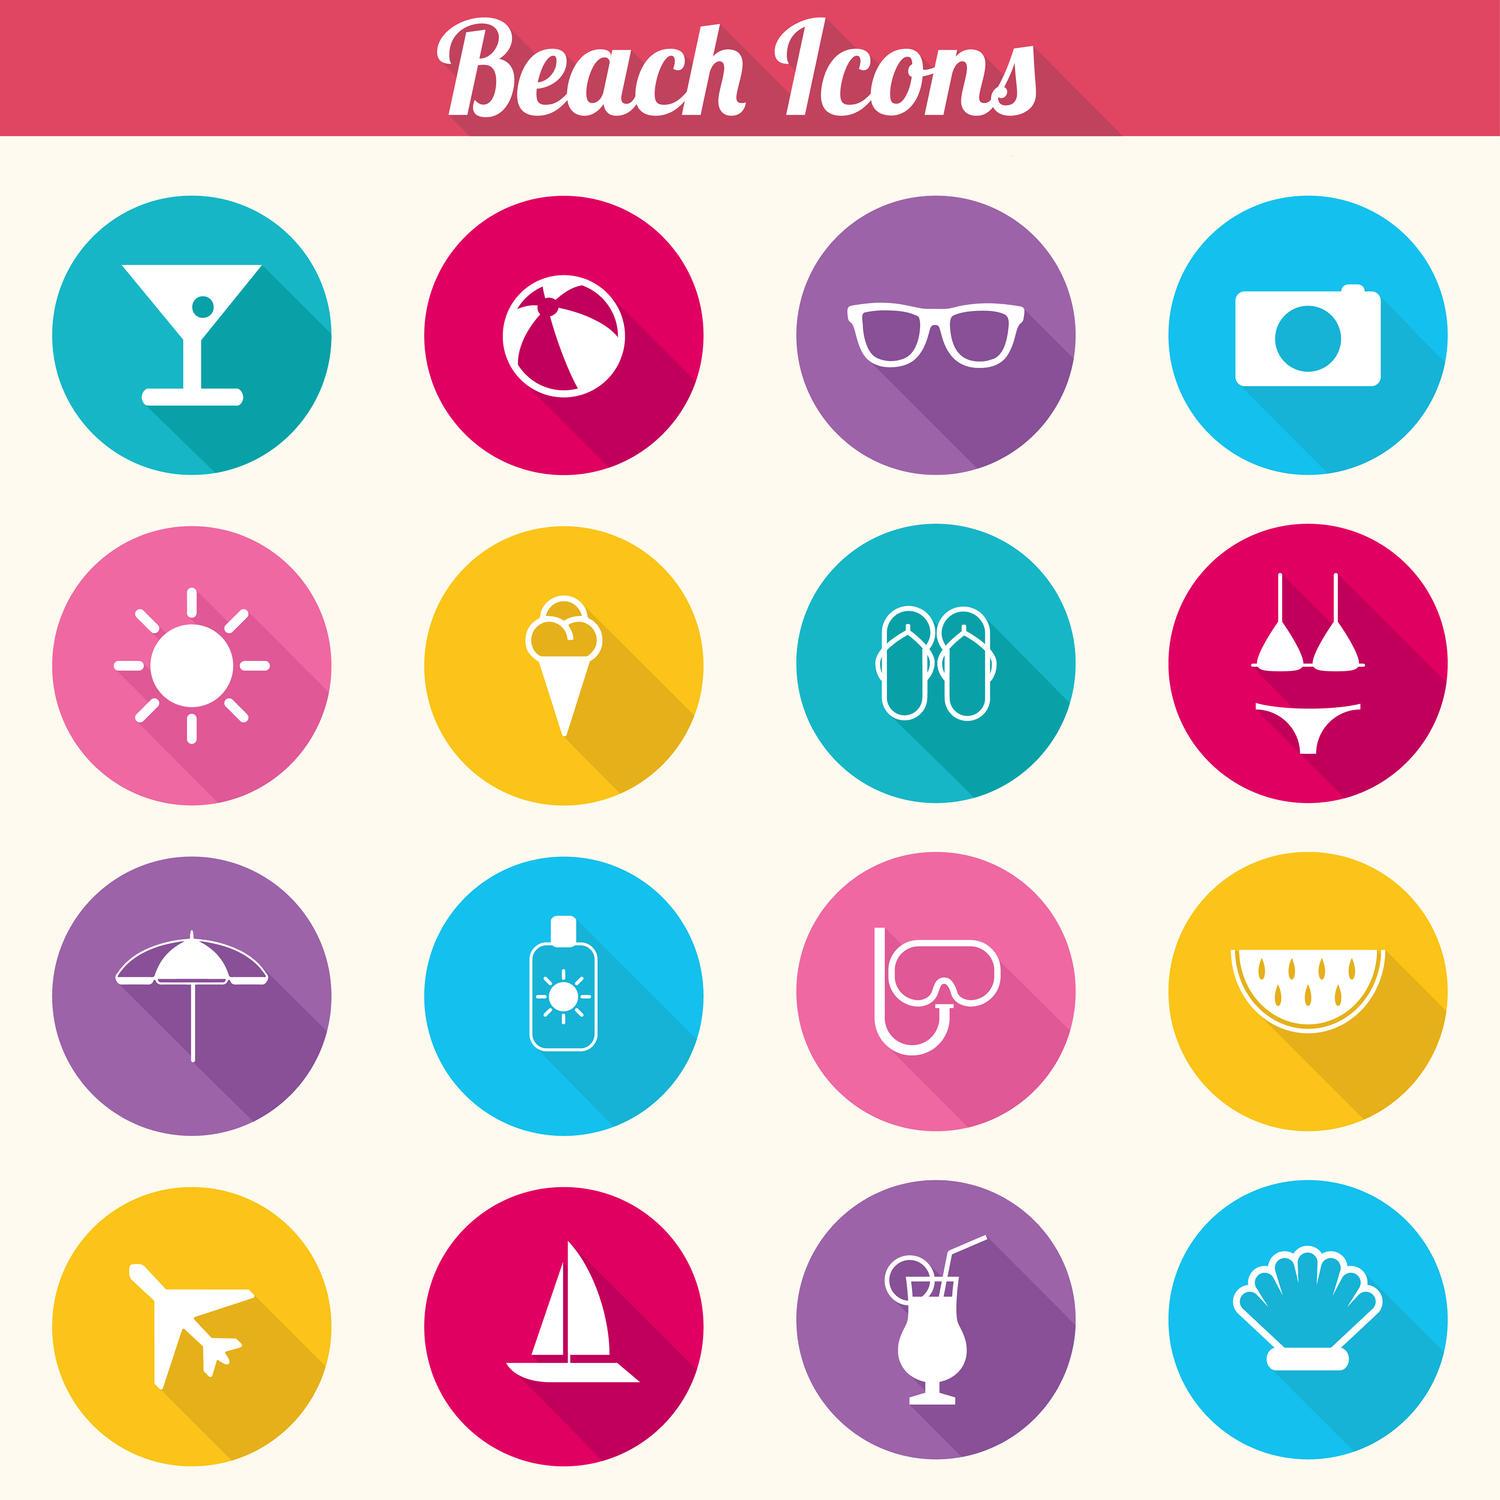 Custom Design Icon Set by snja - 44242